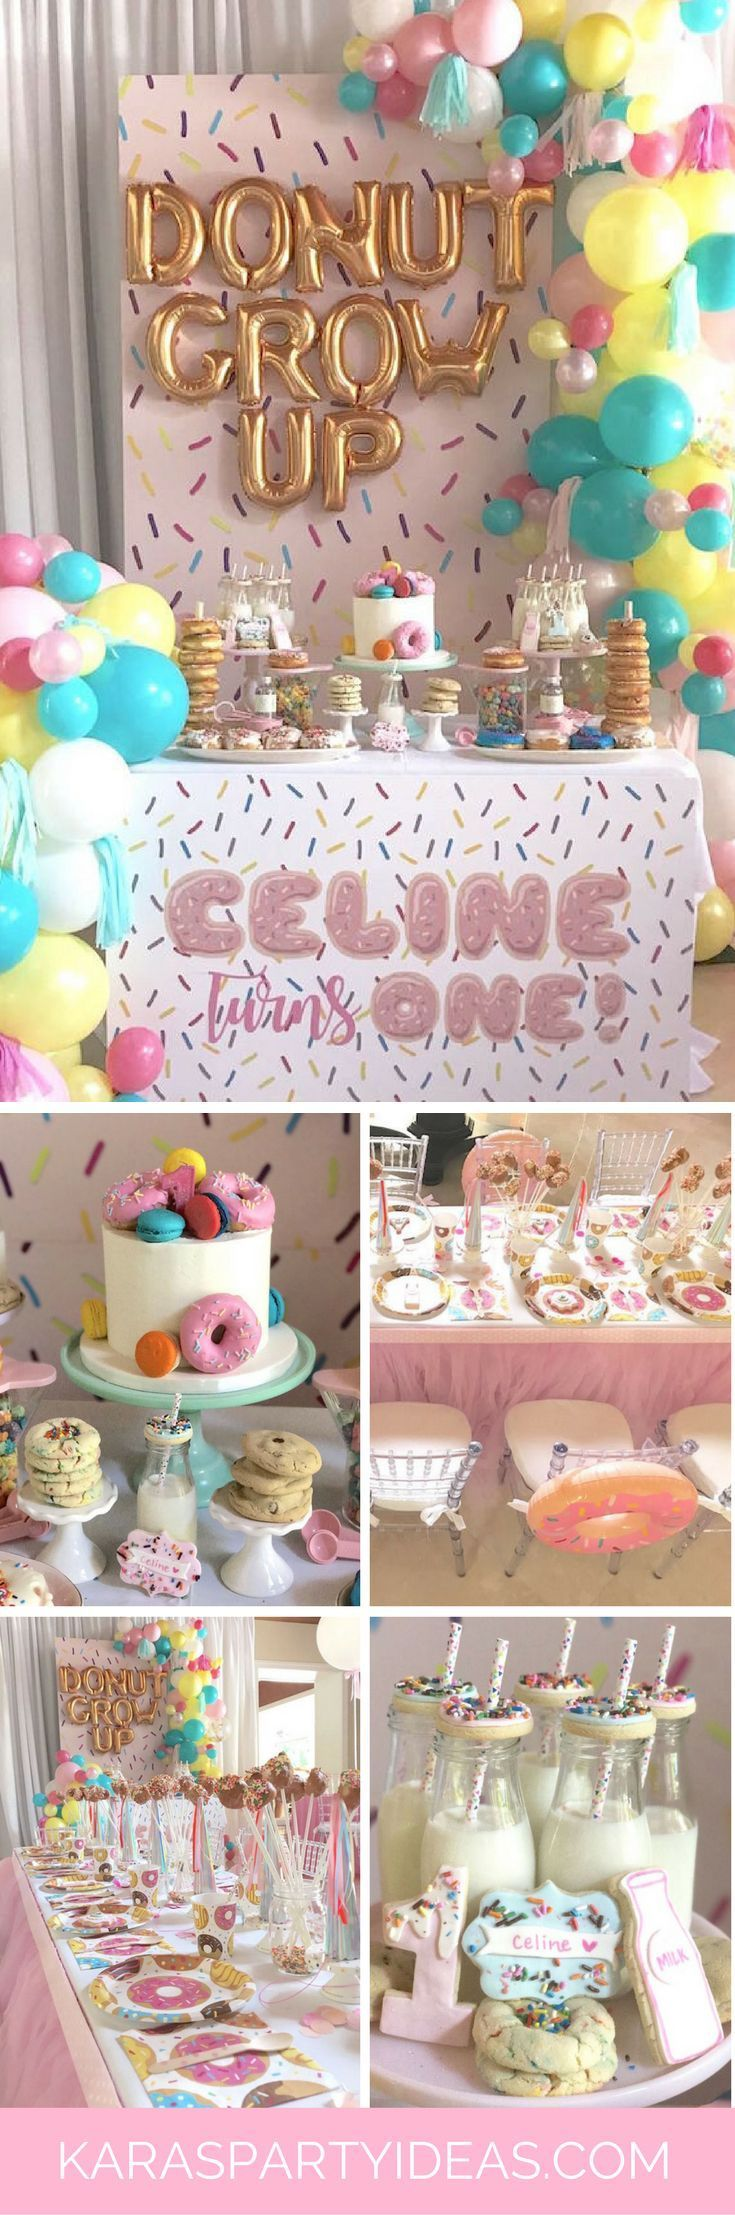 Donut Grow Up Party Doughnut Birthday via Kara's Party Ideas | KarasPartyIdeas.com